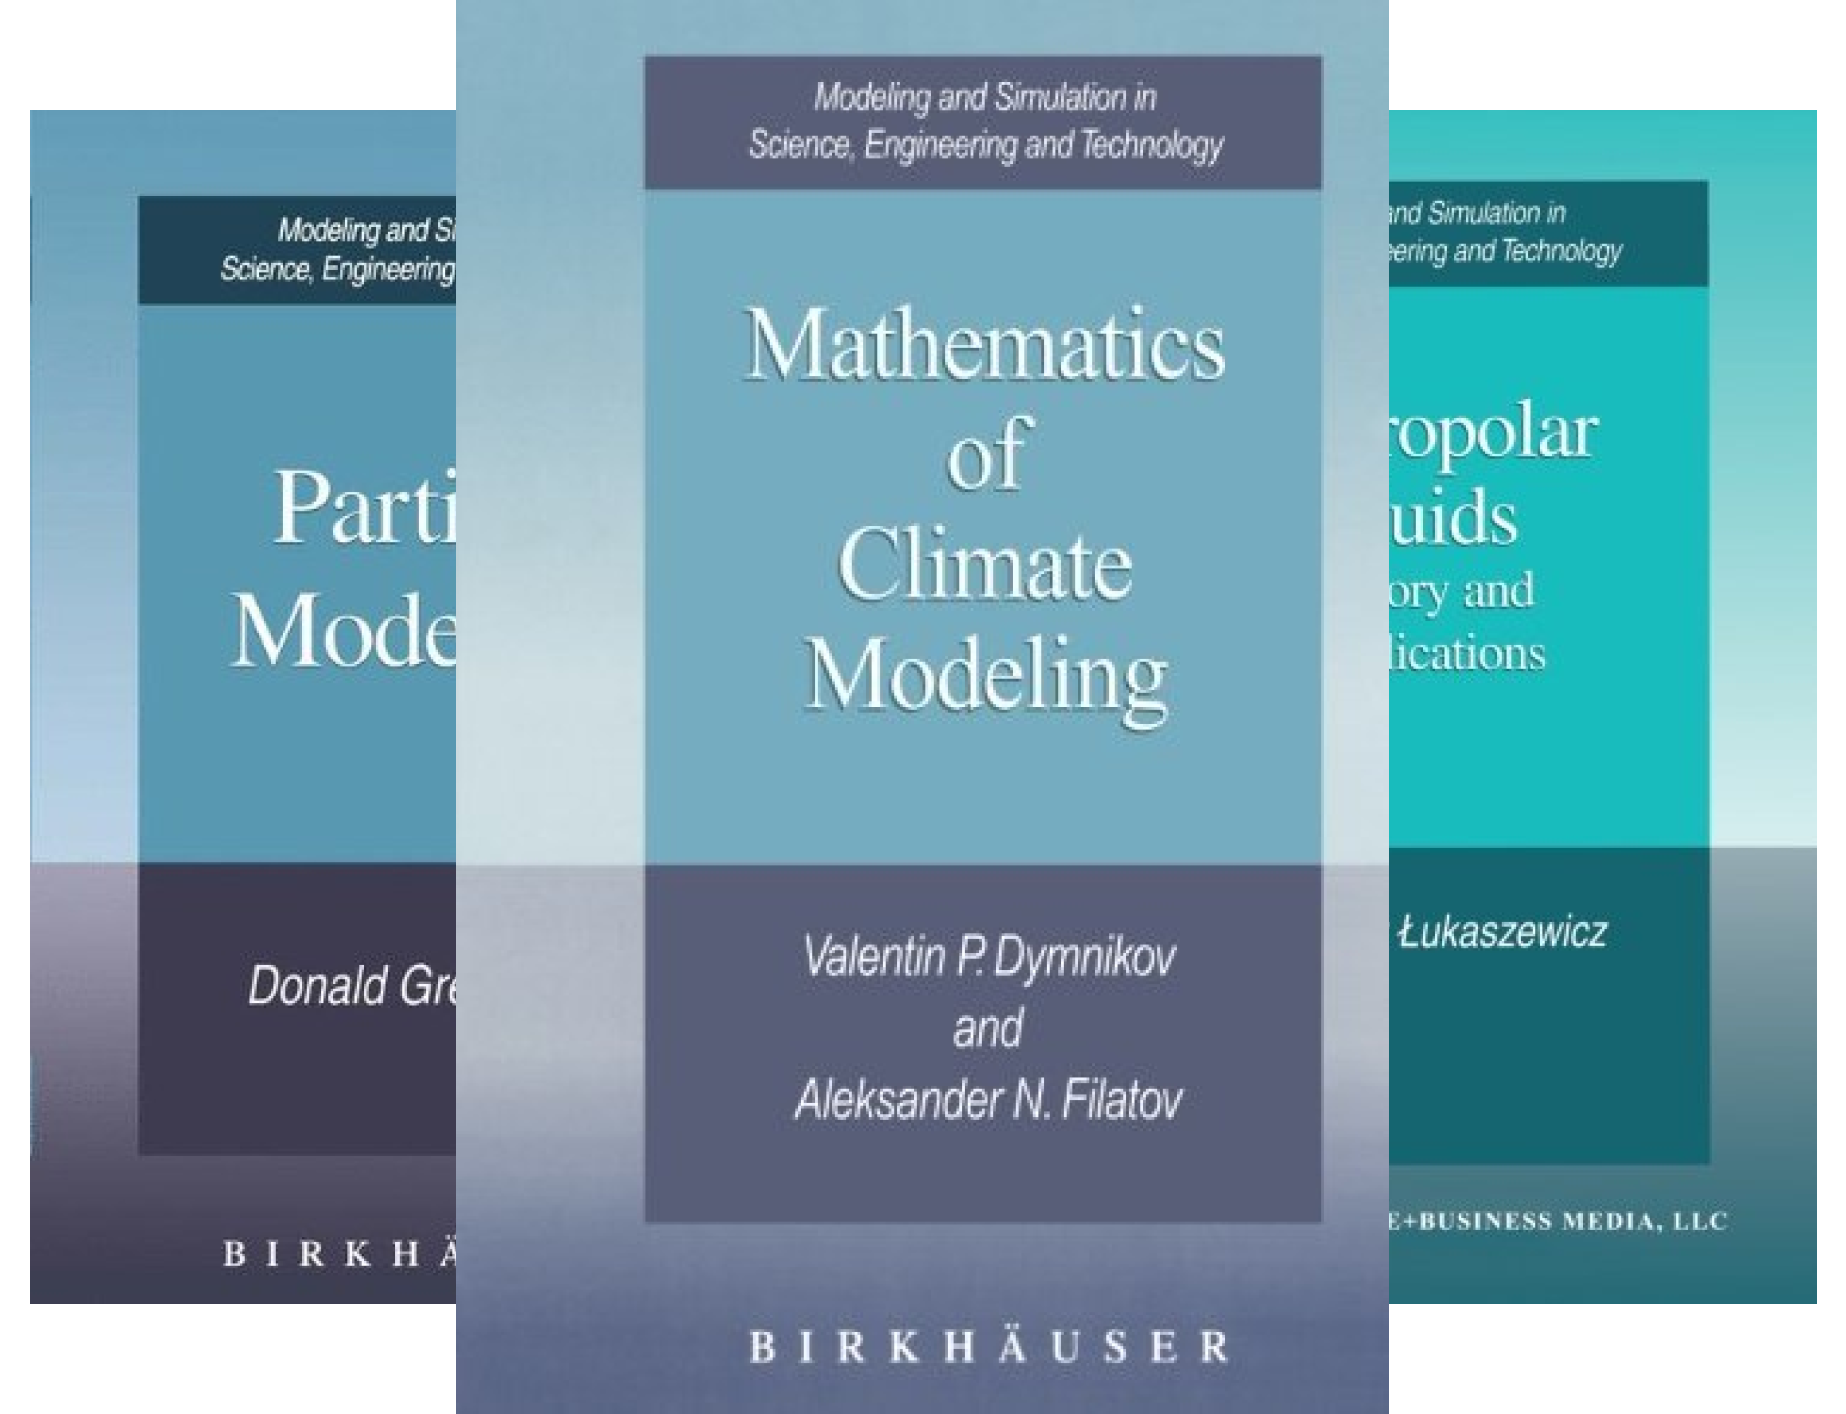 Modeling and Simulation in Science, Engineering and Technology (50 Book Series)